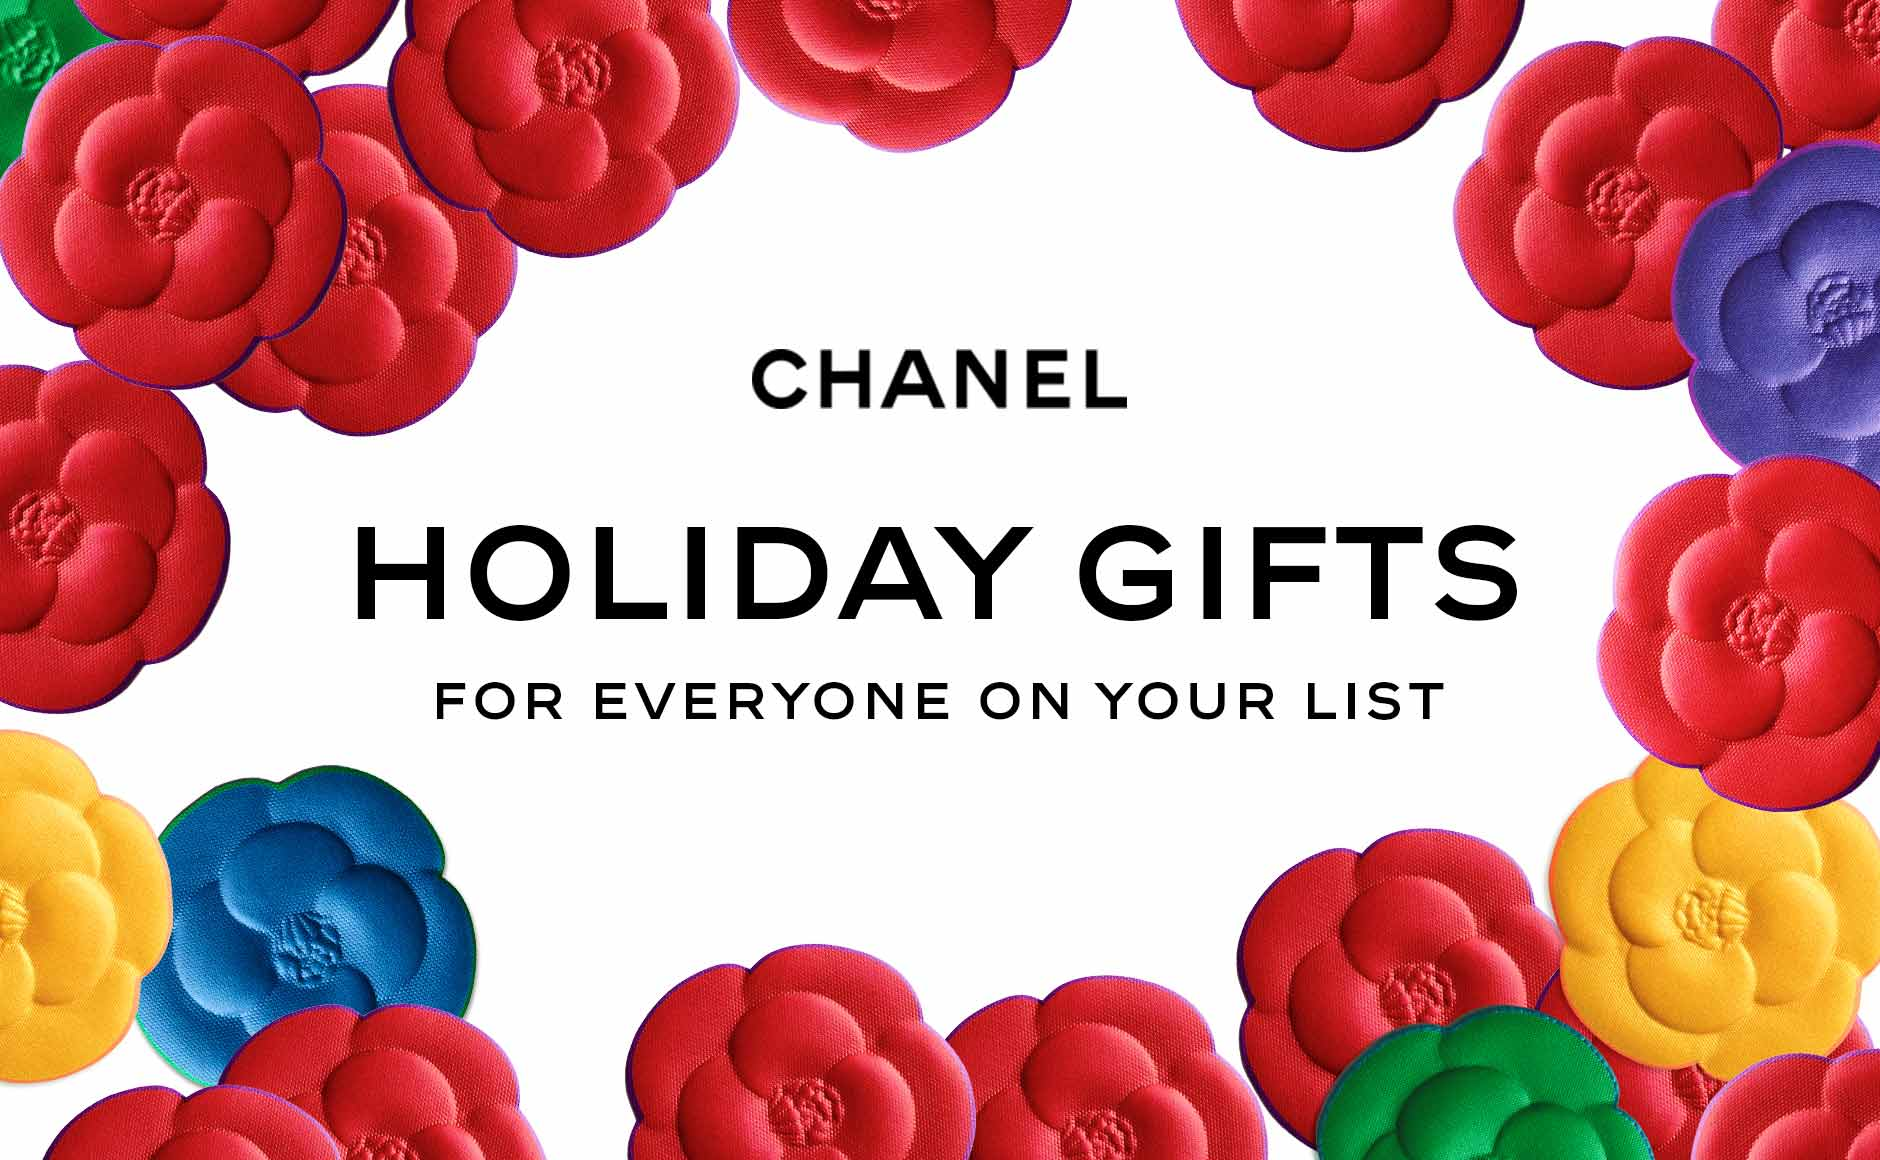 Chanel - Holiday Gifts For Everyone On Your List